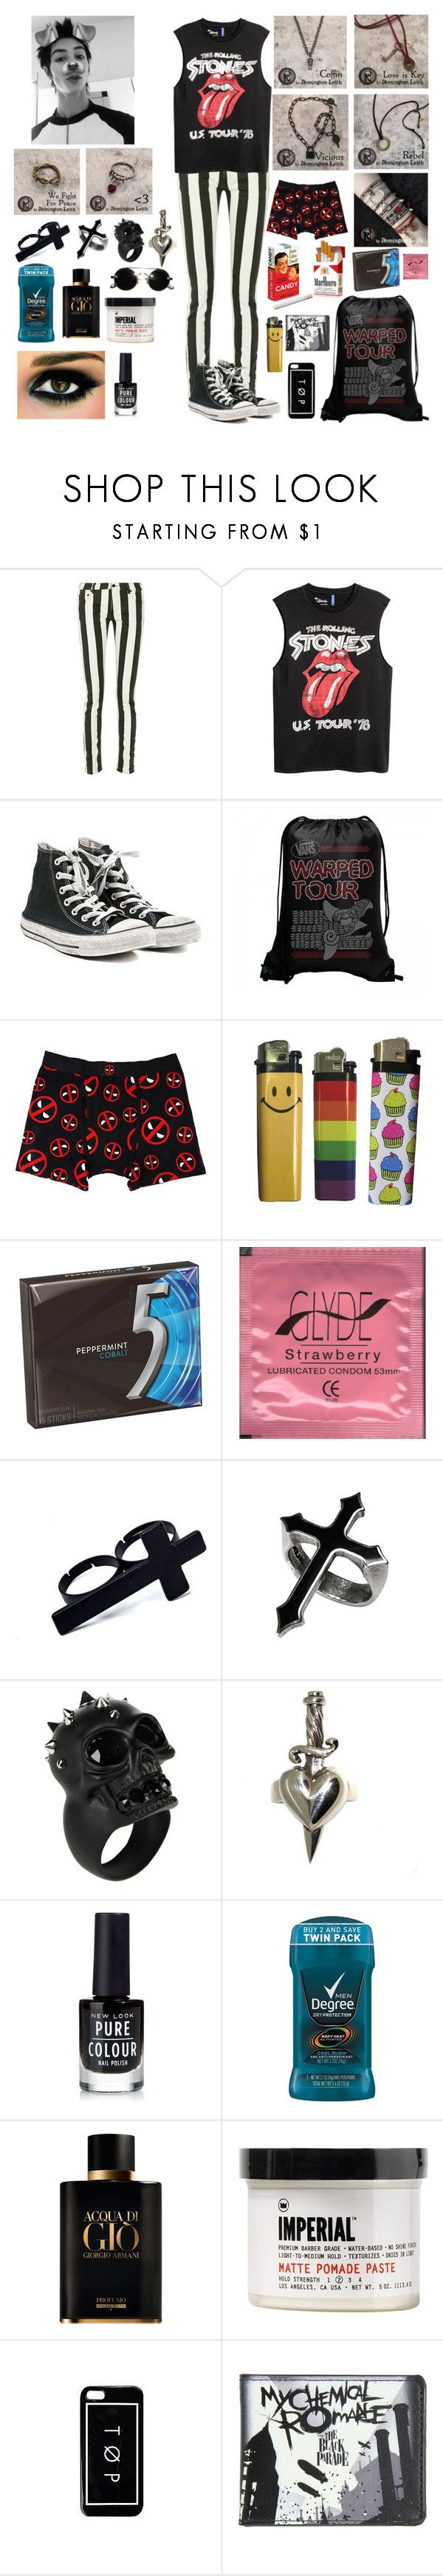 """Remington Leith"" by whengaypigsfly ❤ liked on Polyvore featuring Off-White, Converse, Marvel, Alexander McQueen, Metal Couture, New Look, Giorgio Armani, Imperial Barber Products, Hot Topic and men's fashion"